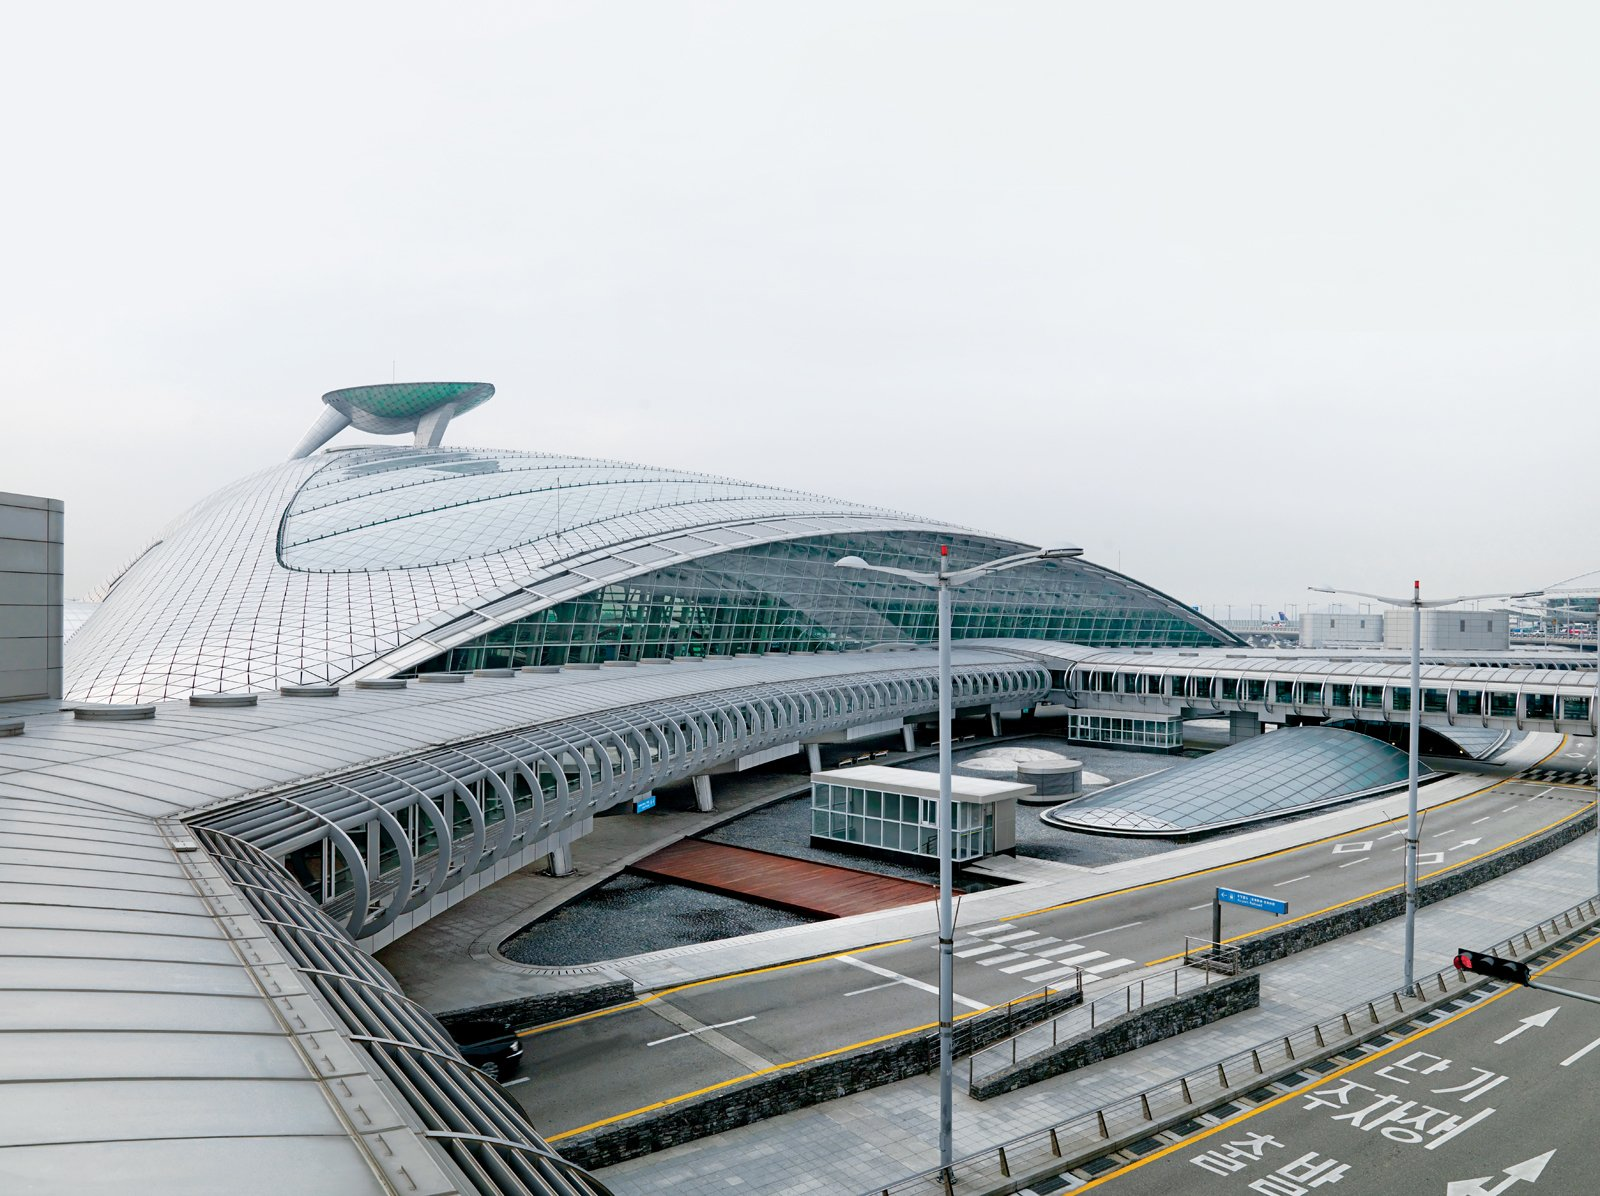 Incheon International, Seoul  Photo 3 of 5 in An Introduction to Airport Design